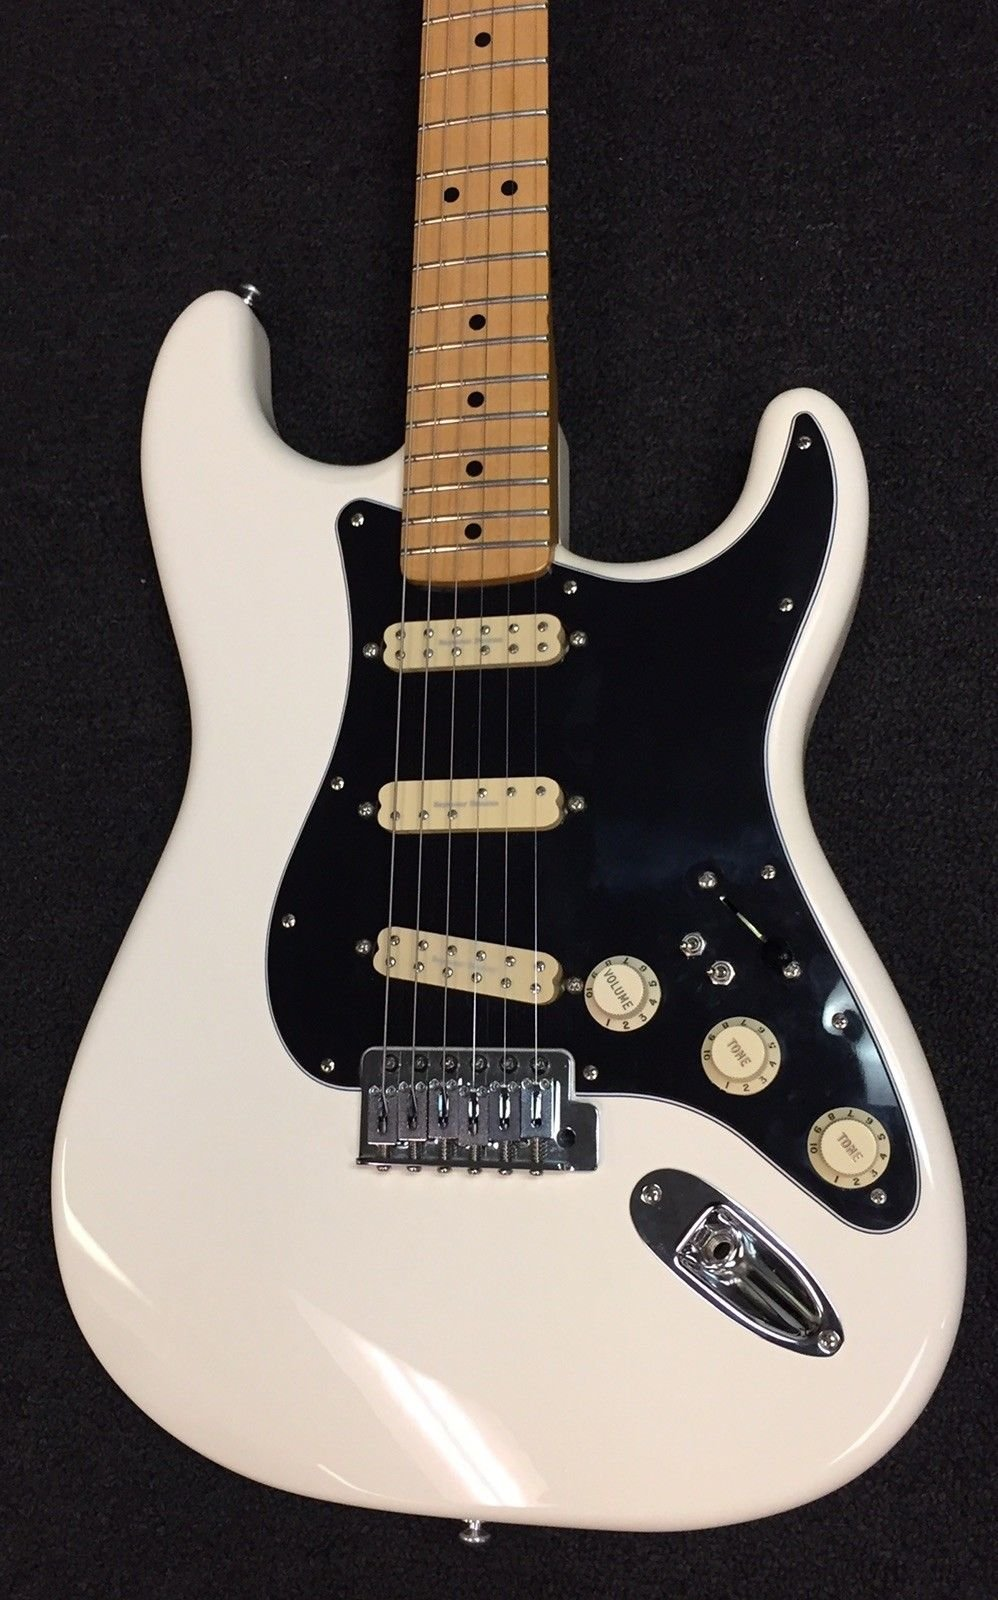 Used Fender Standard Stratocaster w/ Seymour Duncan Little �59, Duckbucker and JB Jr. Pickups - Arctic White w/ Black Pickguard